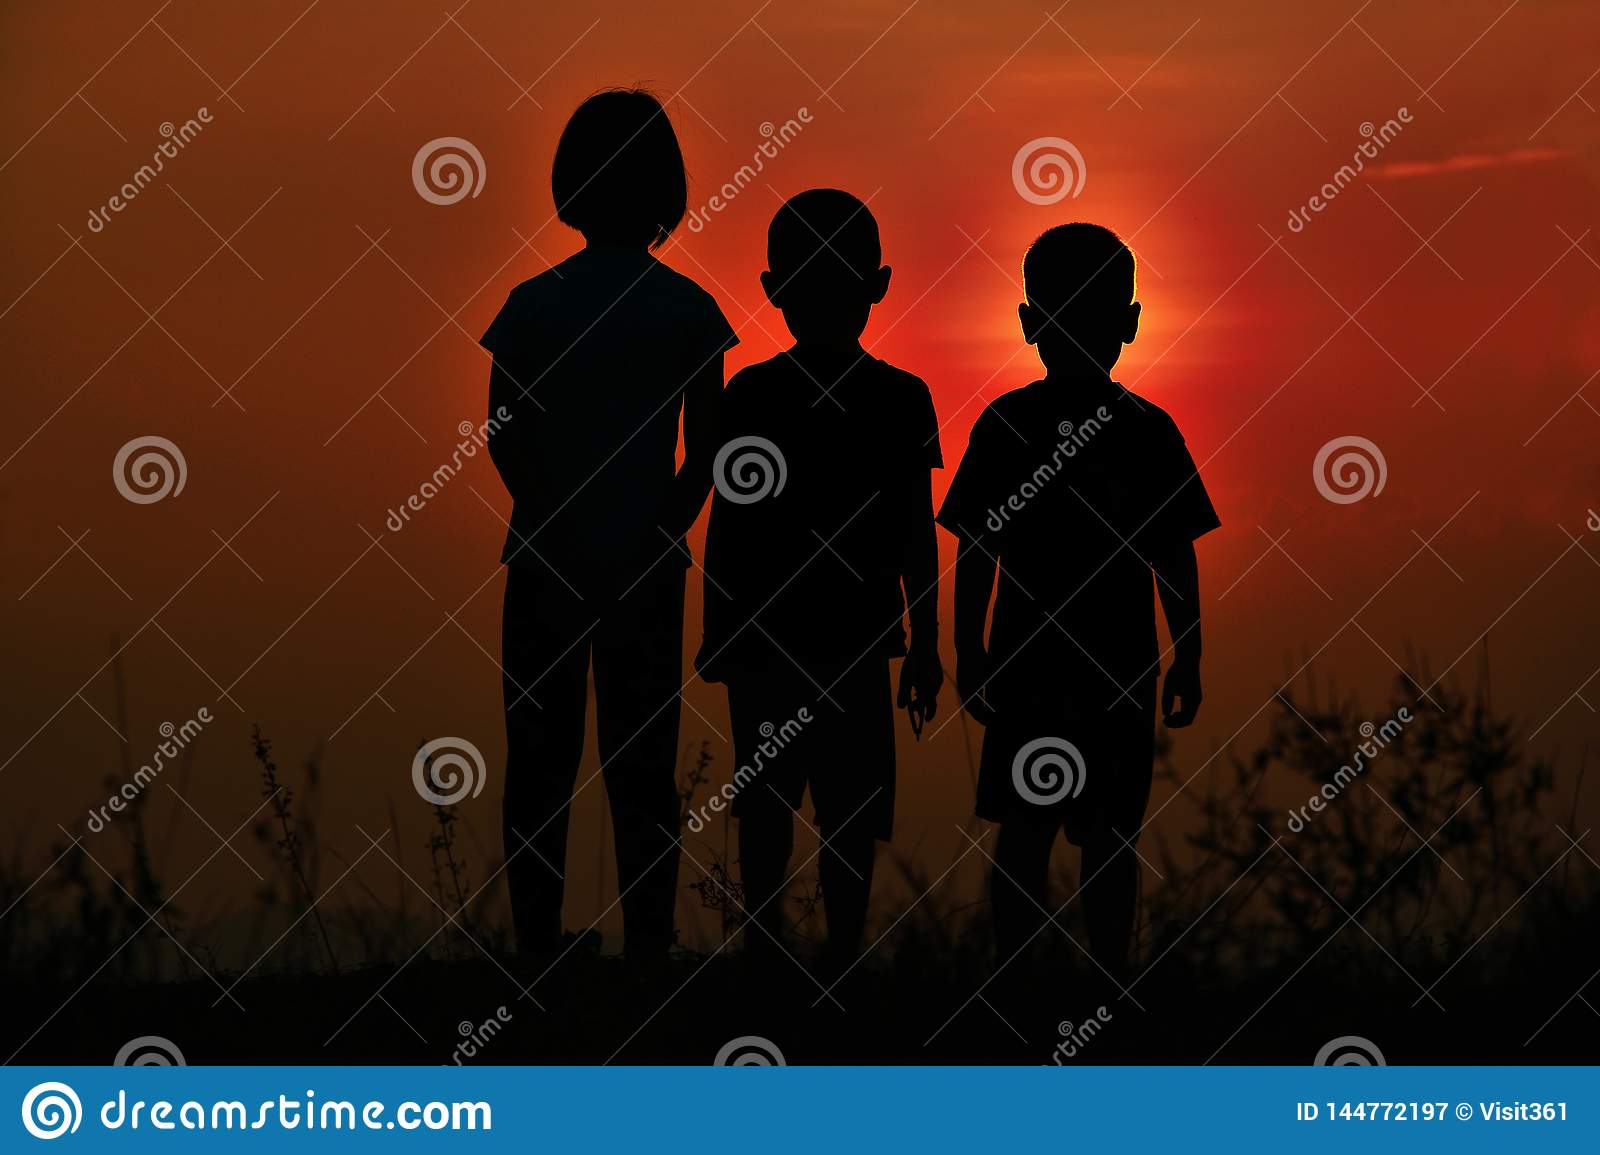 Black silhouette of three children standing together. There is a sky at sunset